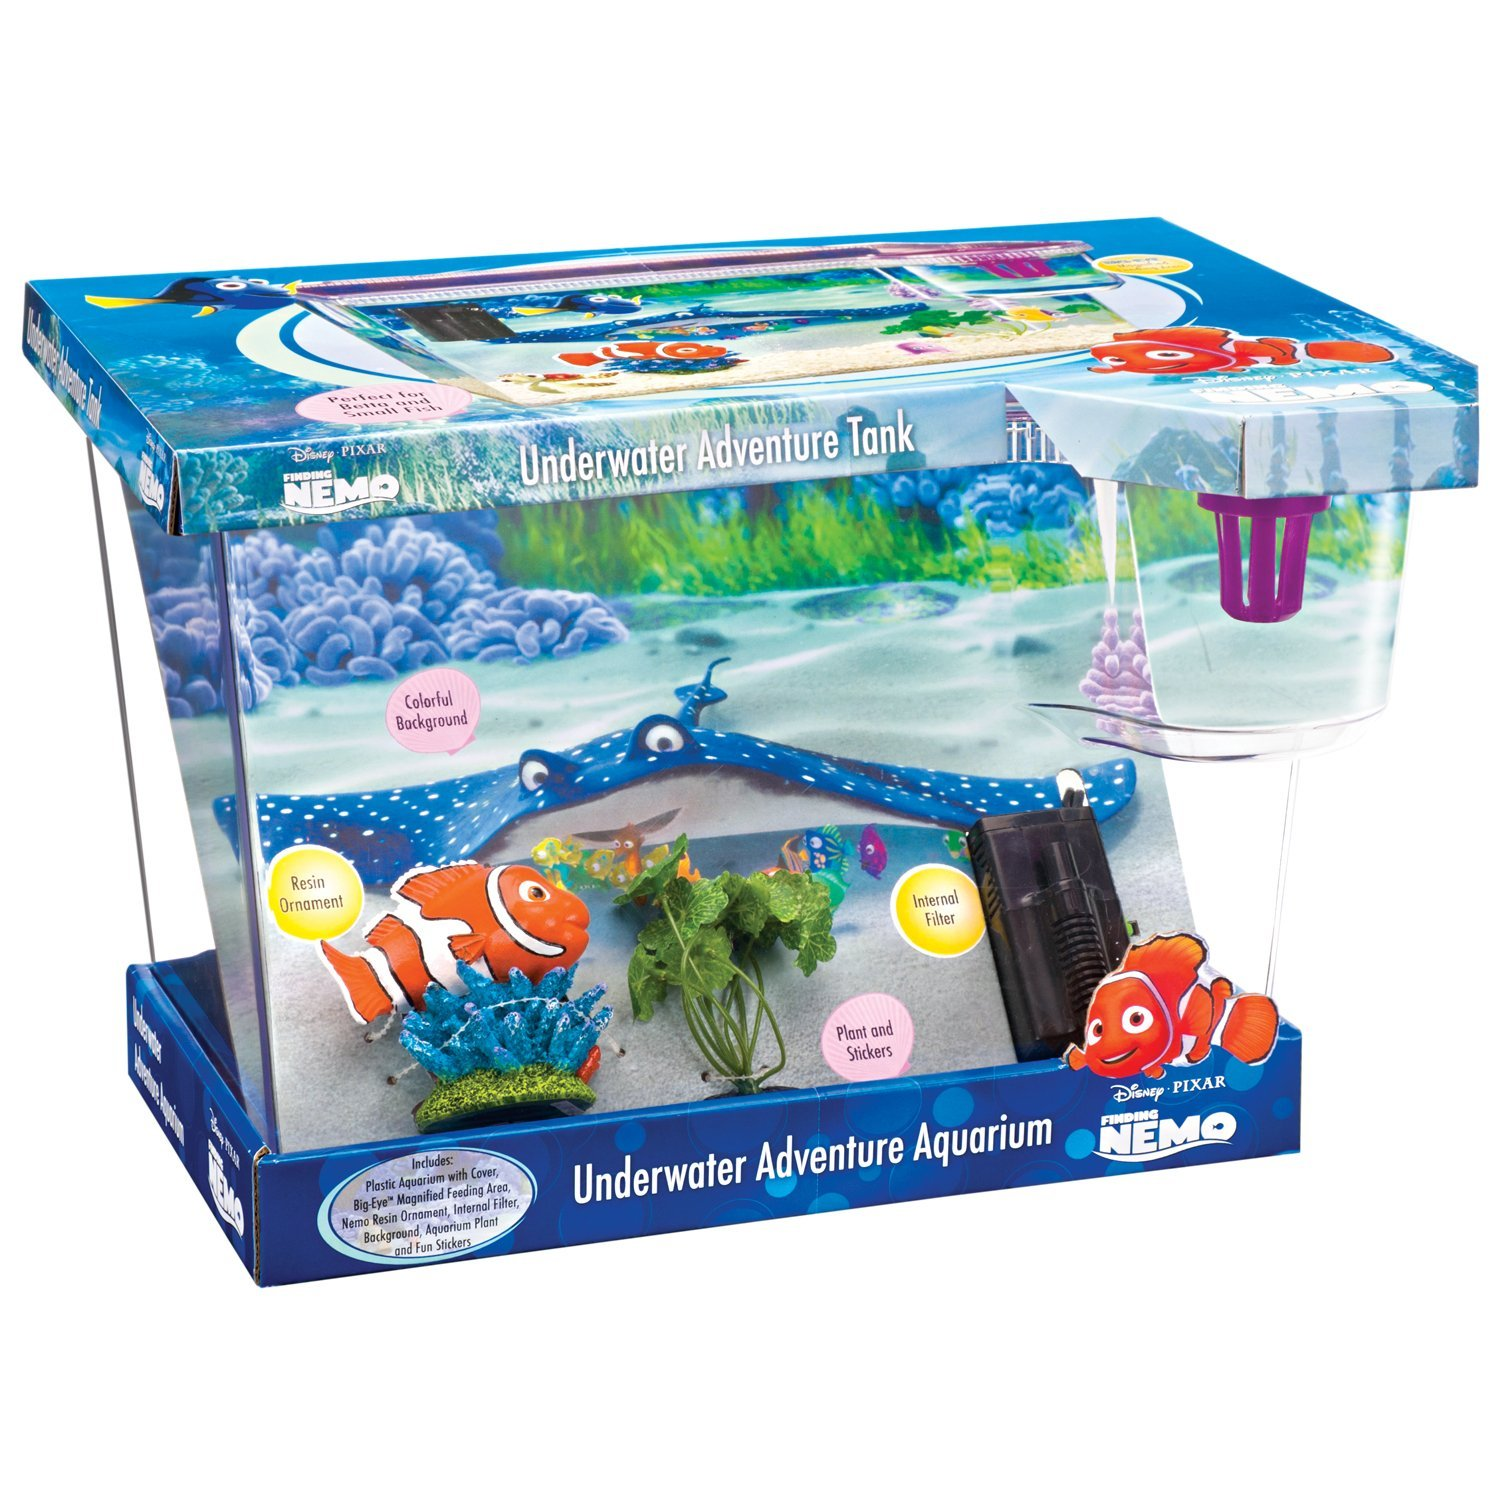 Fish in tank nemo - The Finding Nemo Disney Big Eye Fish Aquarium Fish Tank Amazon Co Uk Pet Supplies